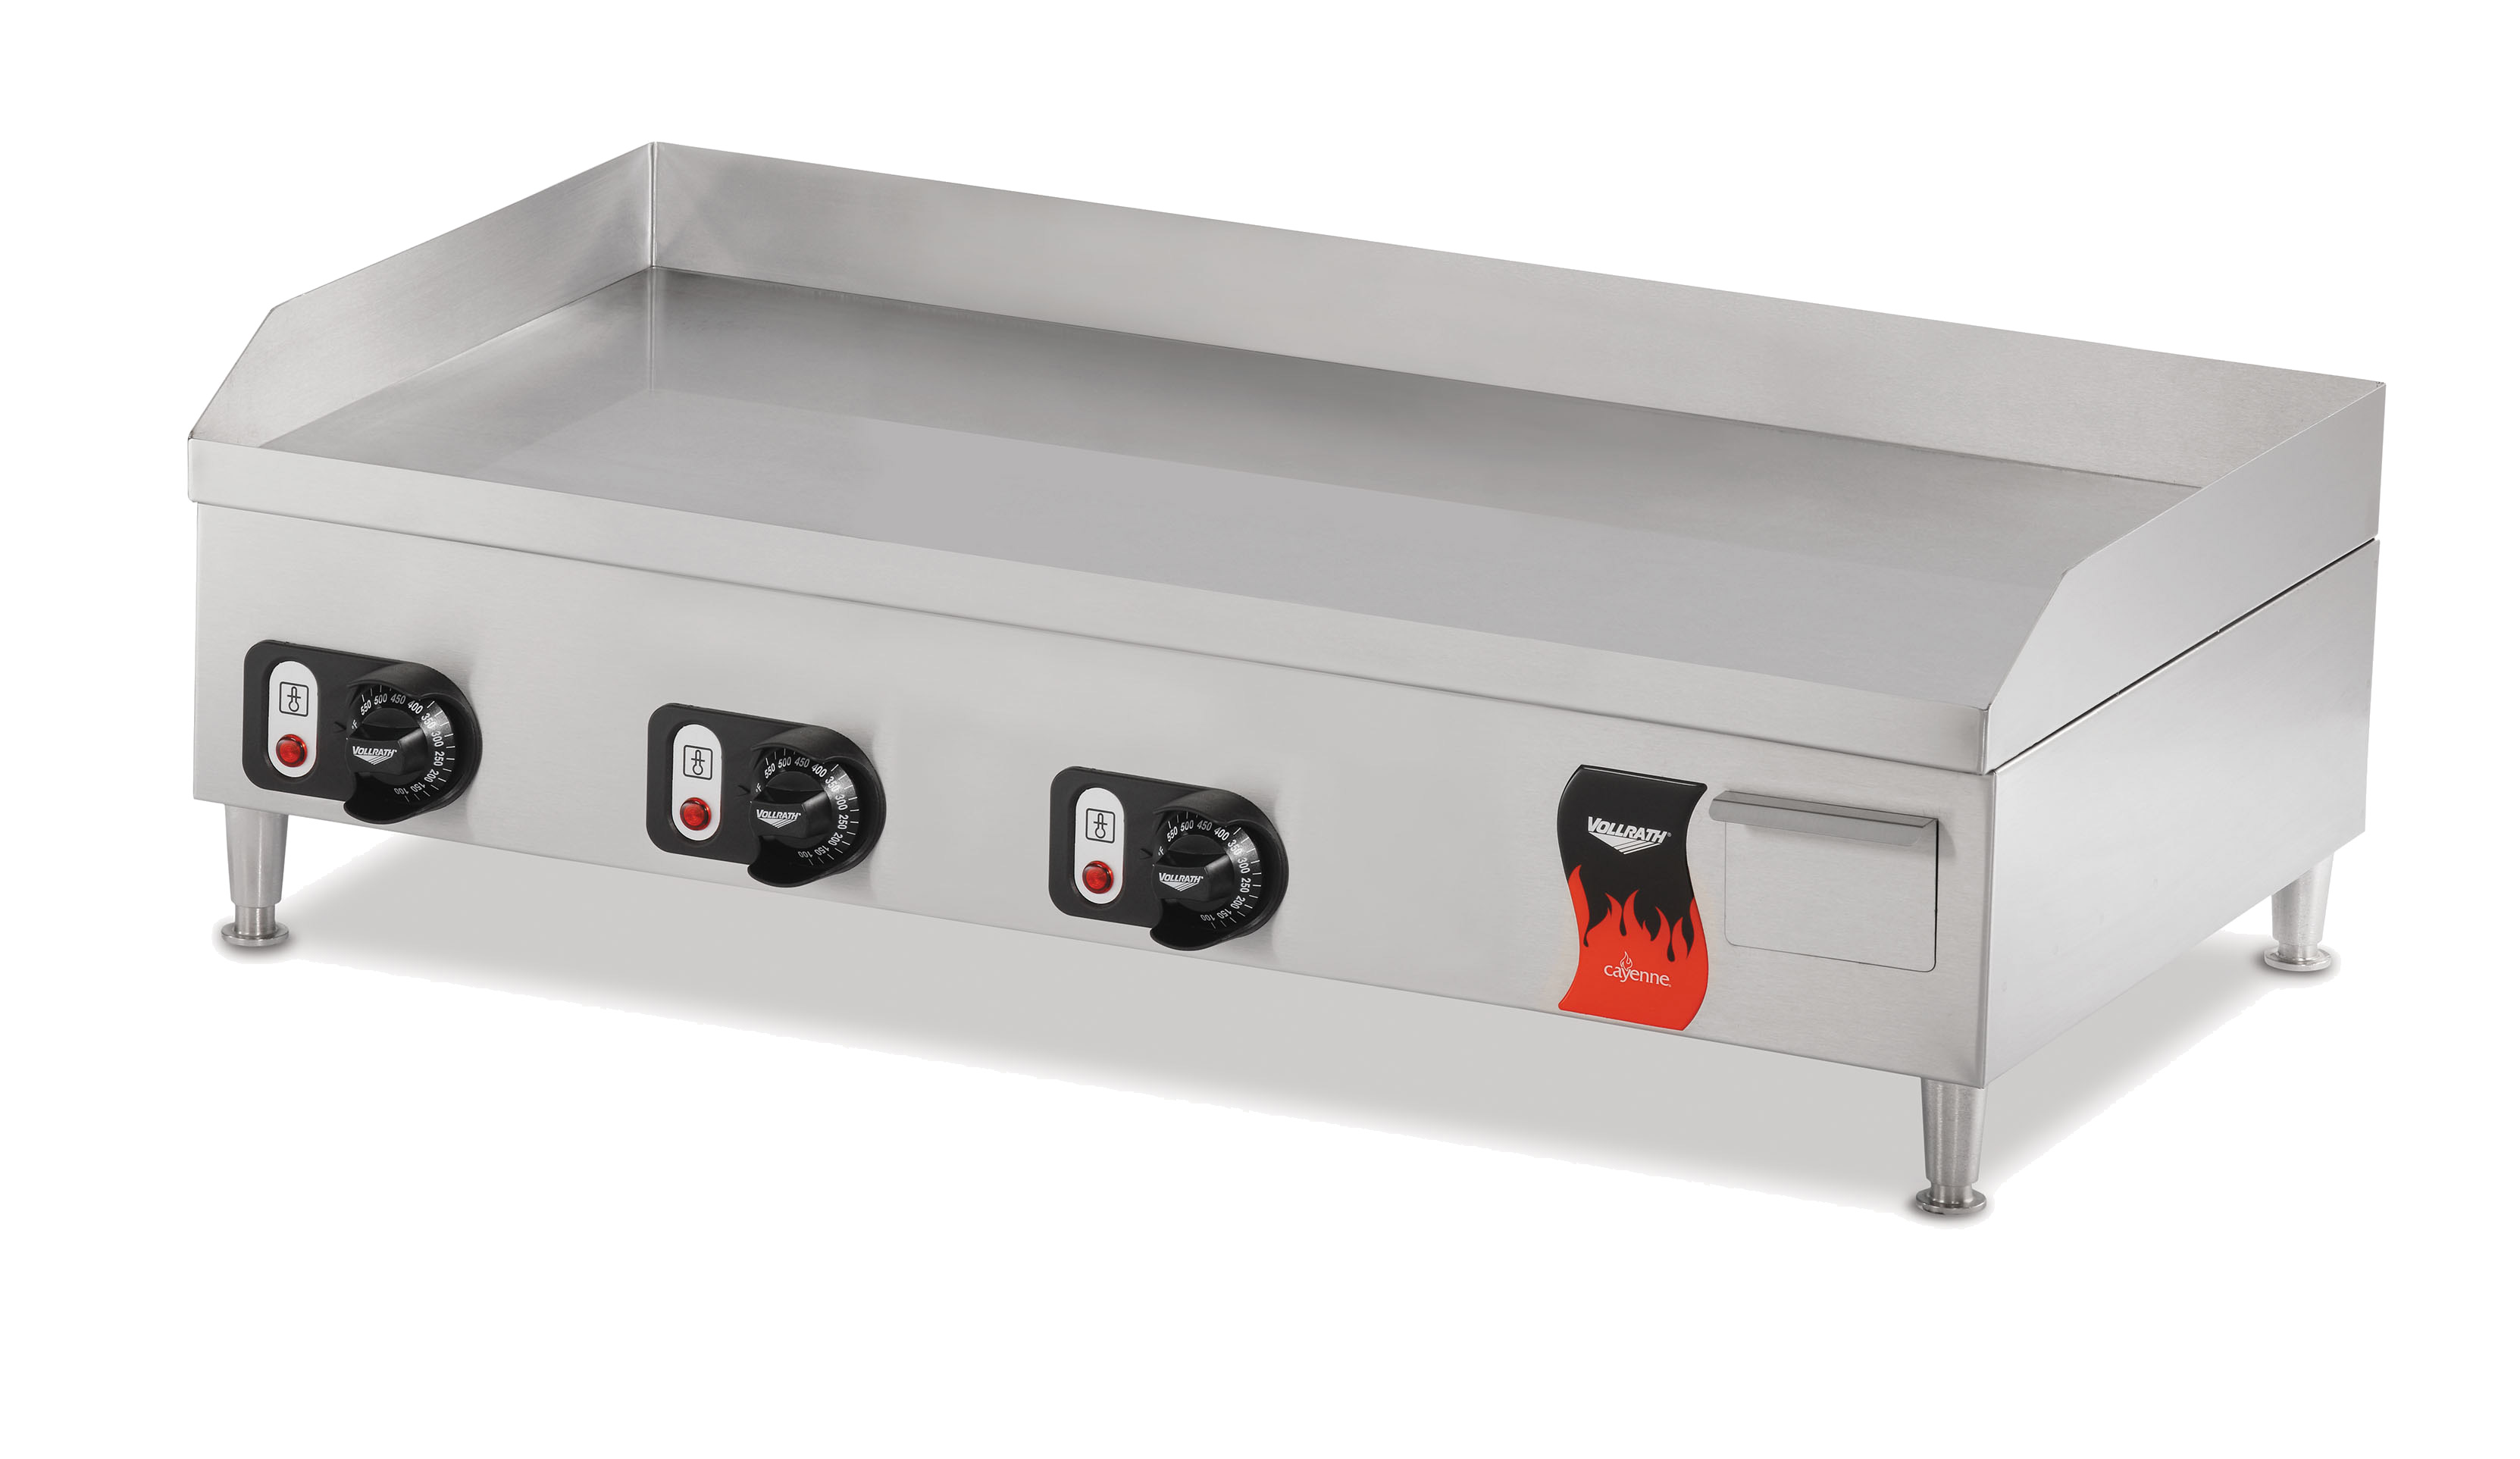 Vollrath 40717 griddle, electric, countertop